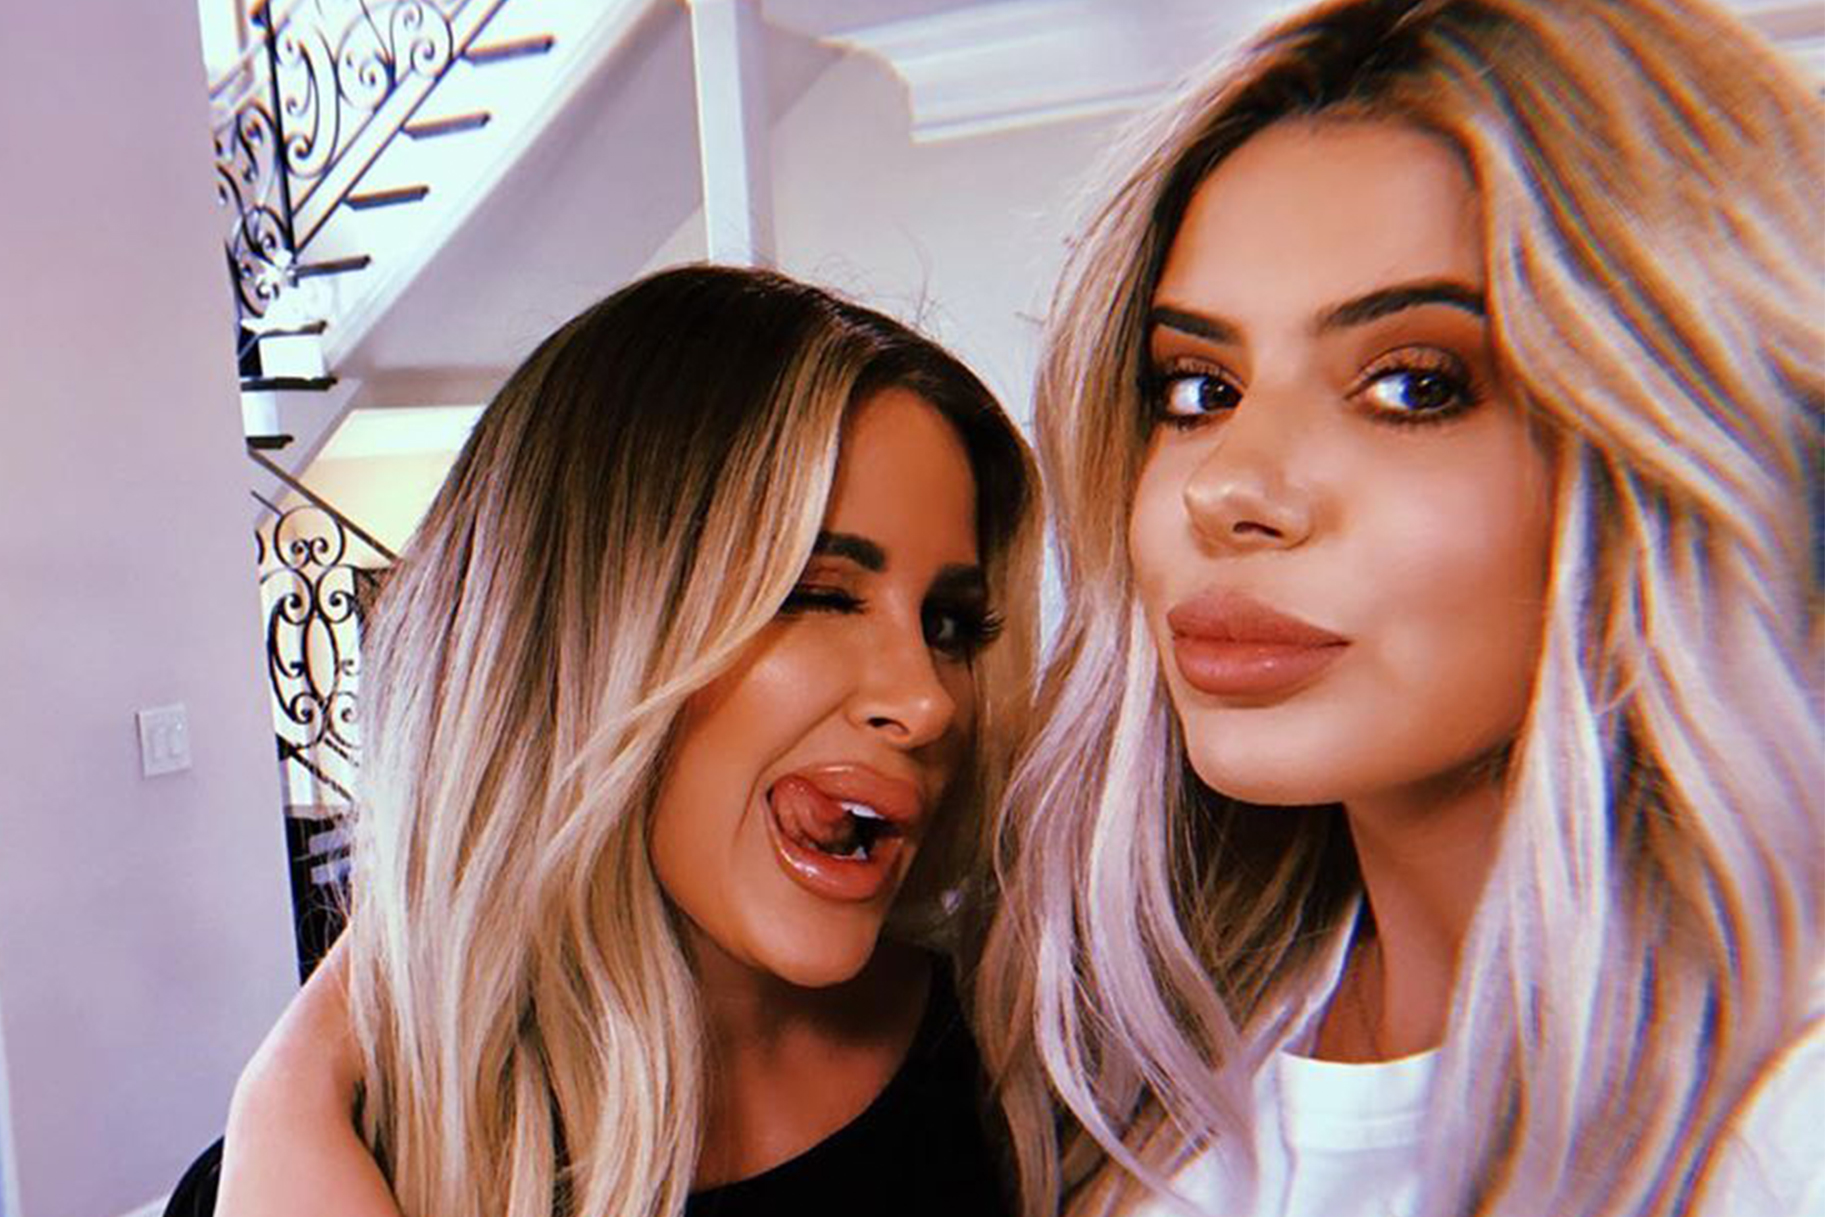 Kim Zolciak Biermann Brielle Home